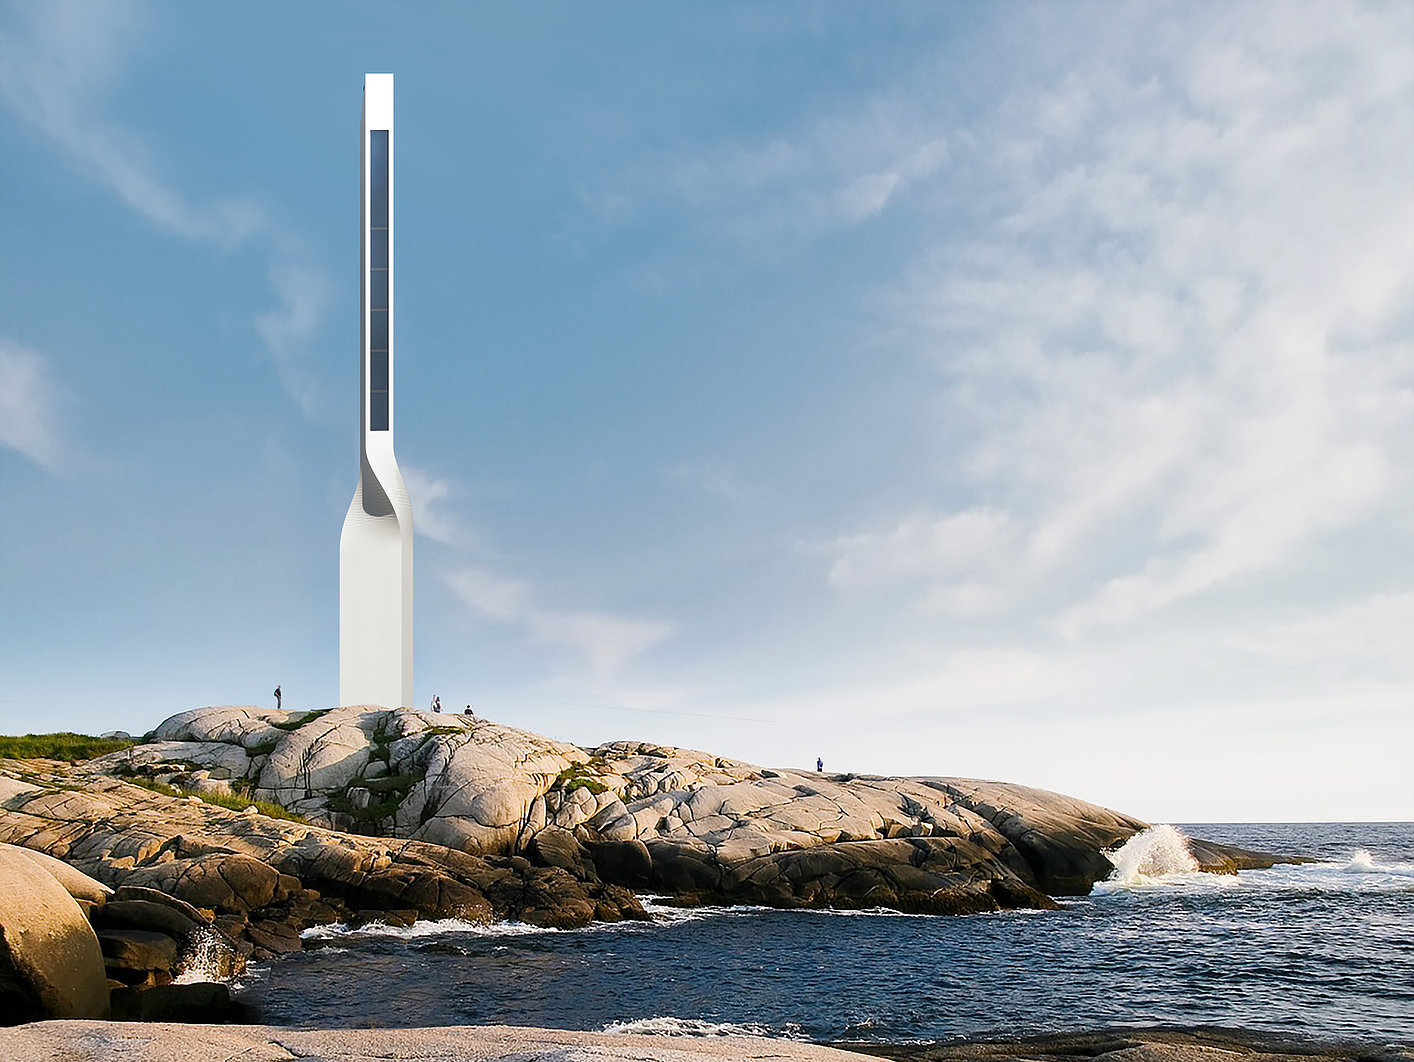 Andrea Cimini's Lighthouse Design Reinvents the Typology for the Age of GPS